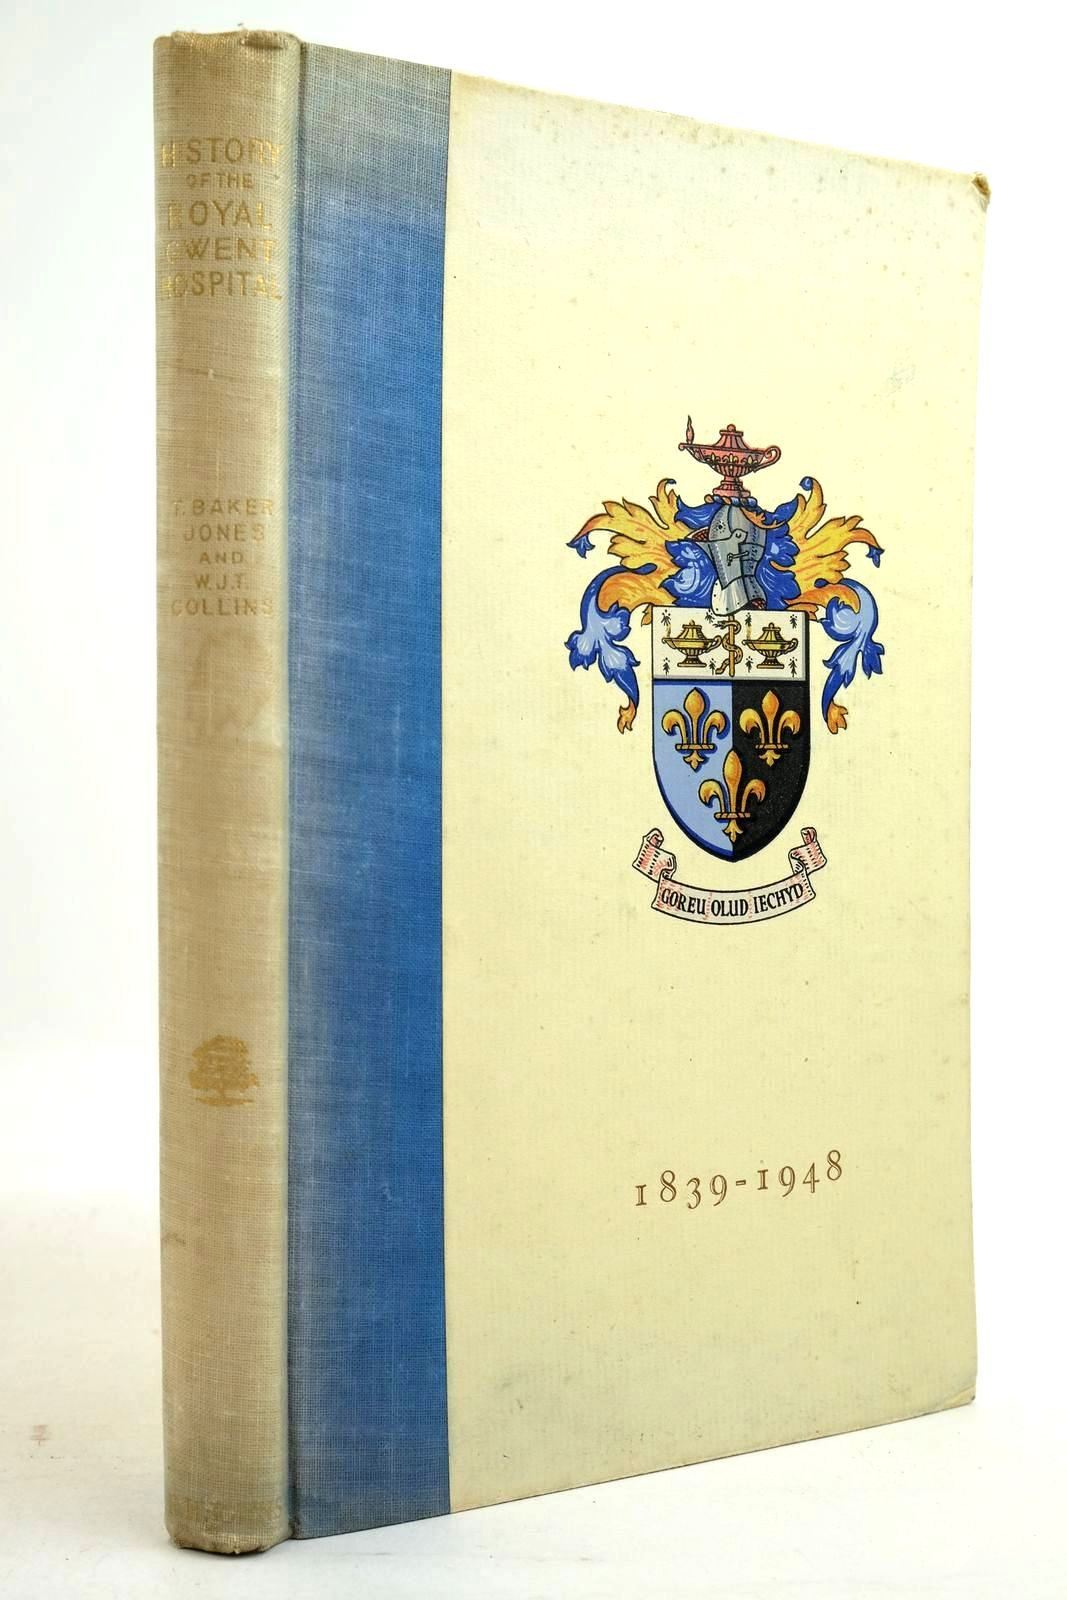 Photo of HISTORY OF THE ROYAL GWENT HOSPITAL 1839-1948- Stock Number: 2134442